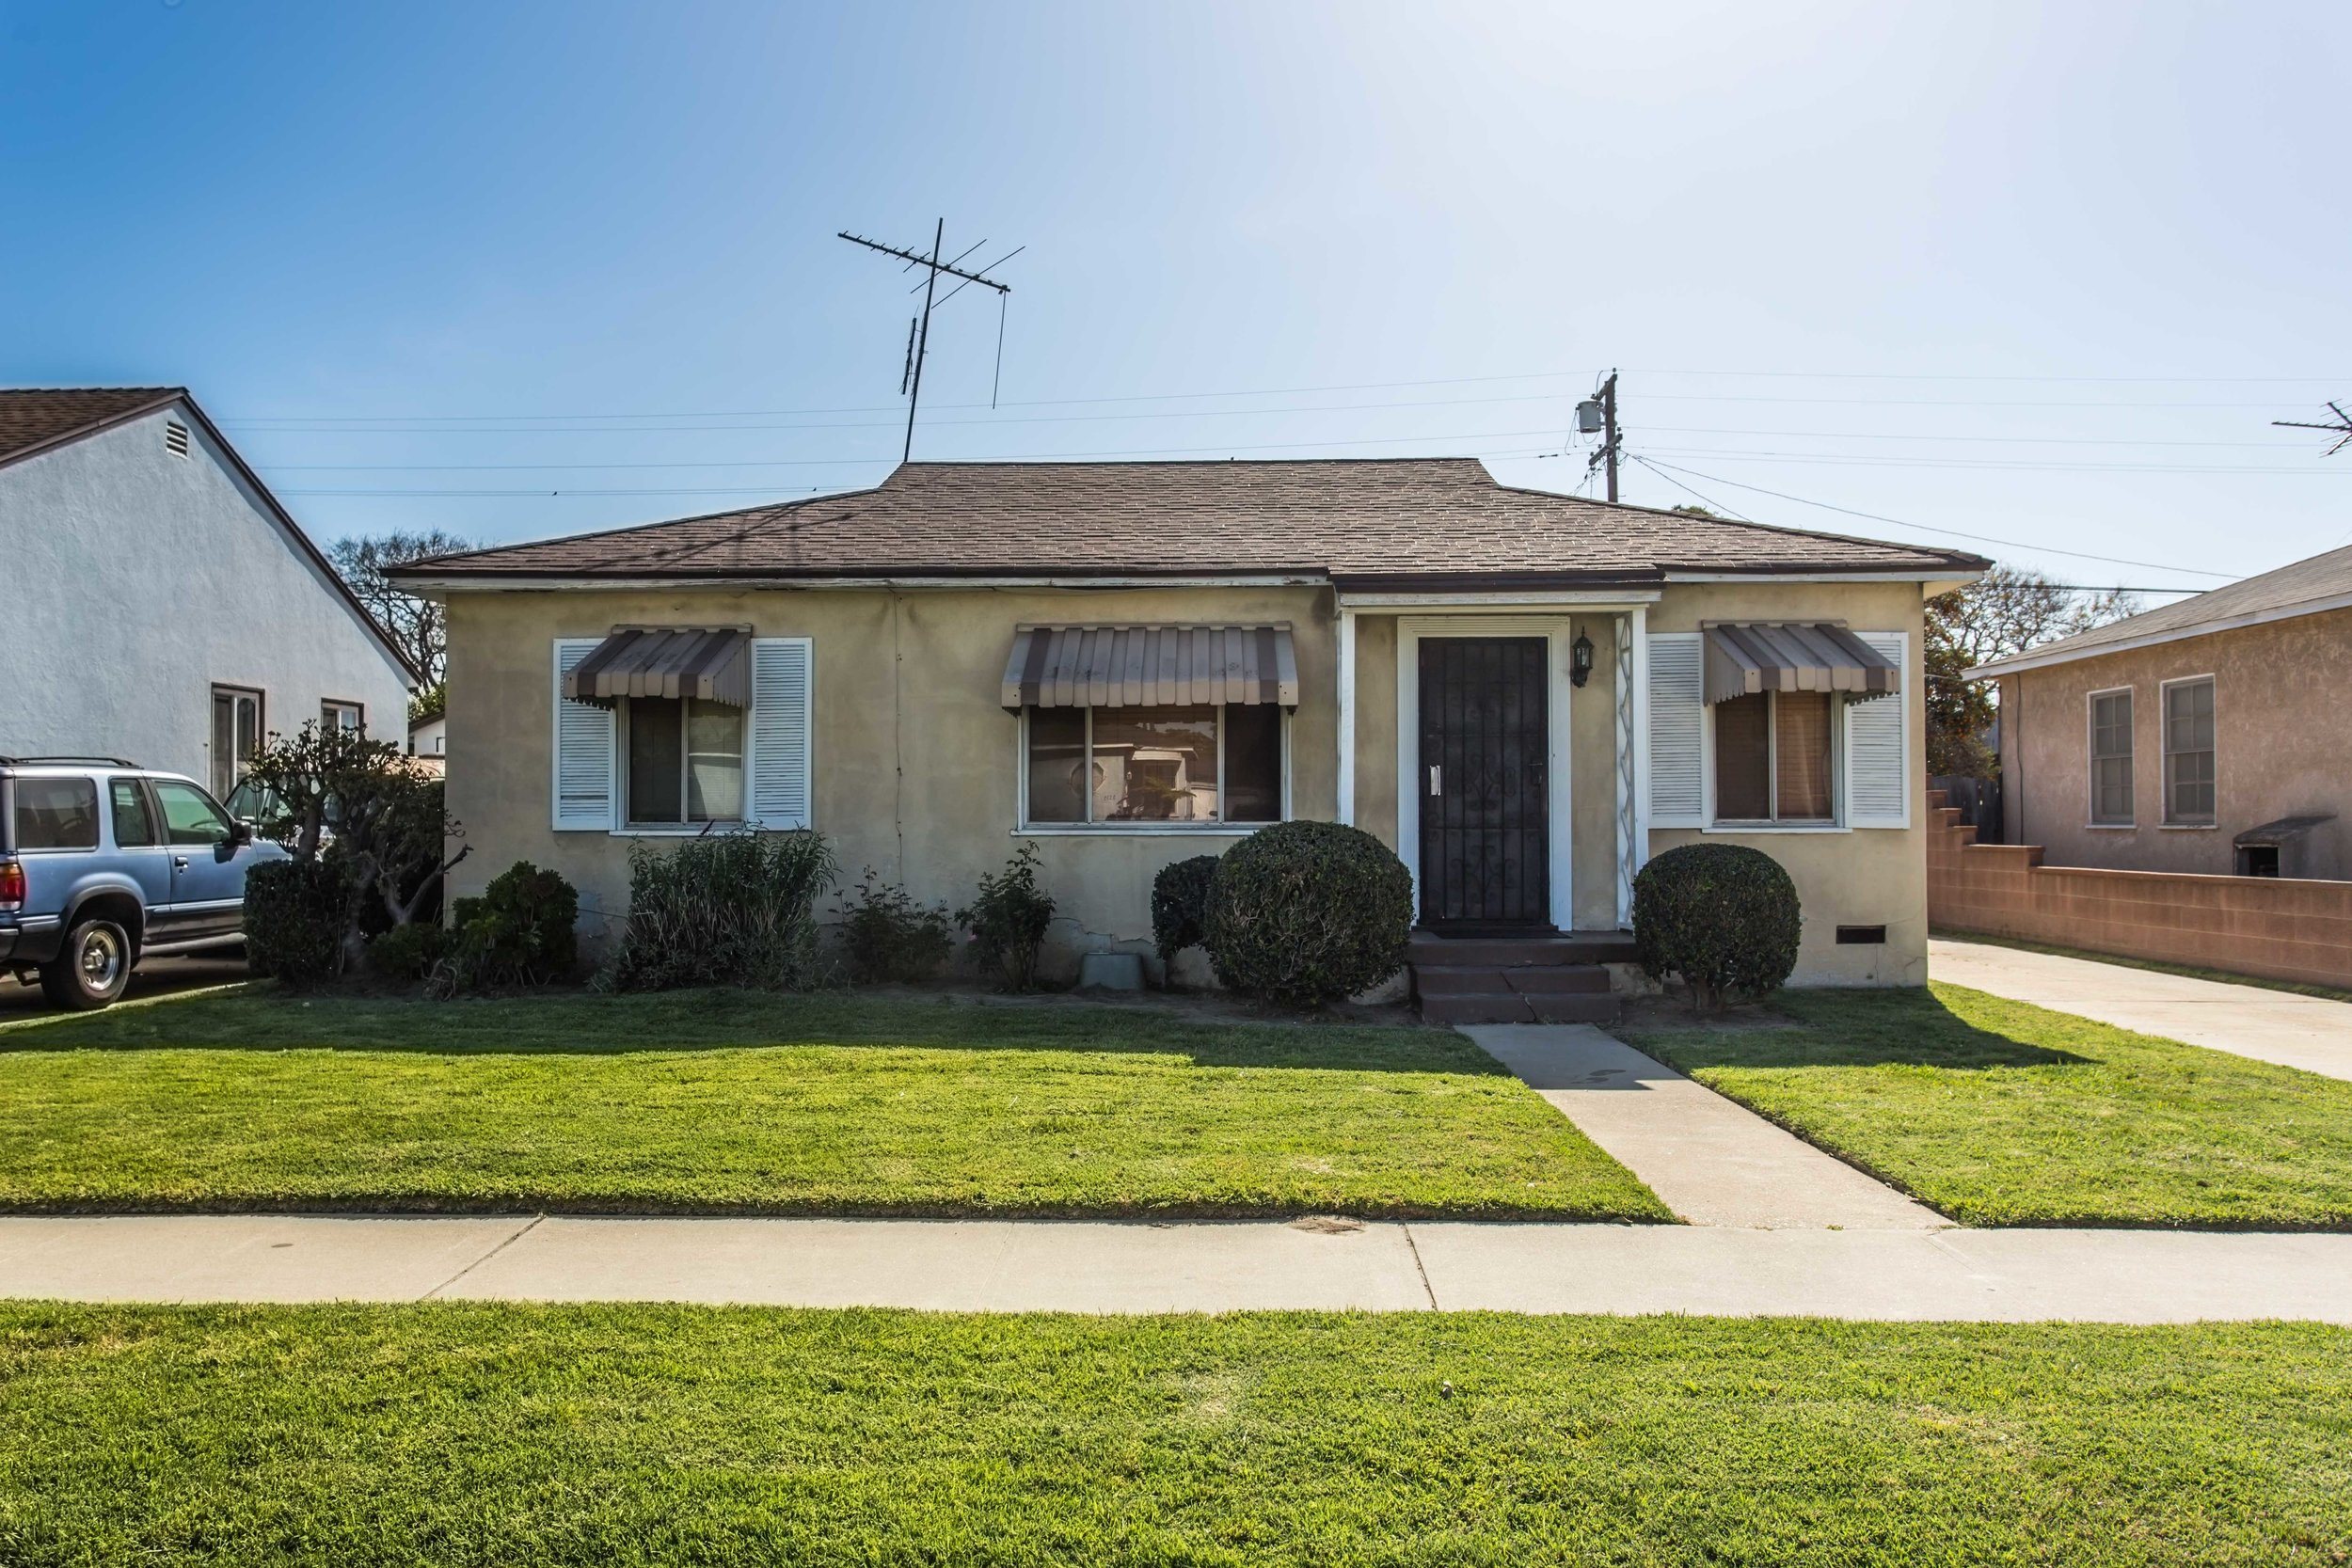 So much potential! This home has a great layout, original wood floors, large kitchen, a spacious backyard with fruit trees and a block wall fence, and a detached two car garage with a long driveway – plenty of parking! Ready for a new owner to make their own.